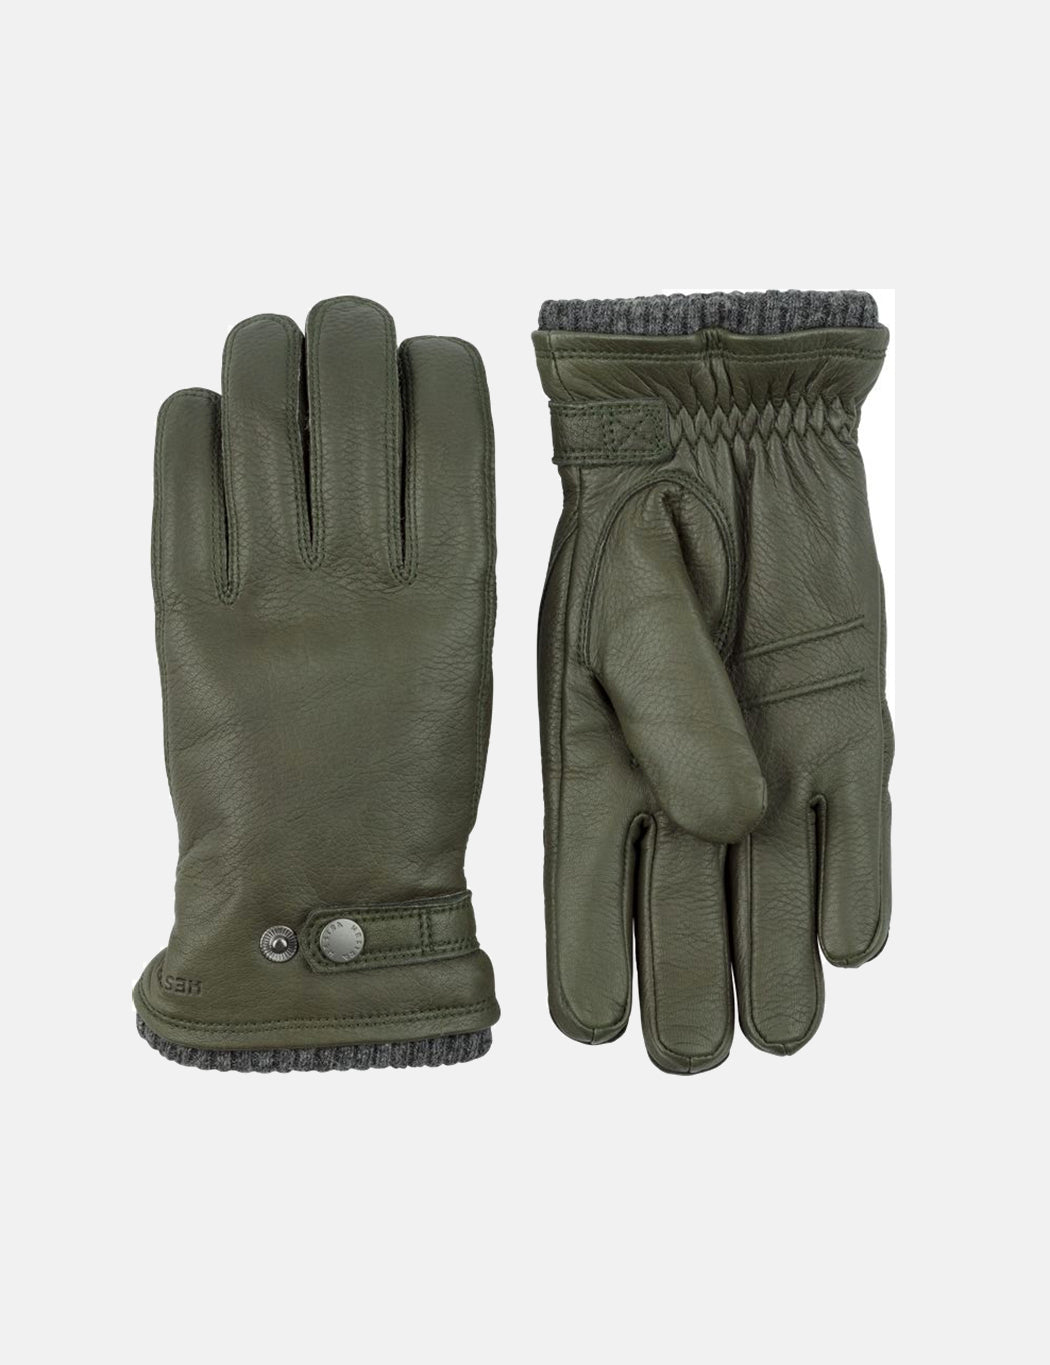 Hestra Utsjo Sport Gloves (Leather) - Forest Green